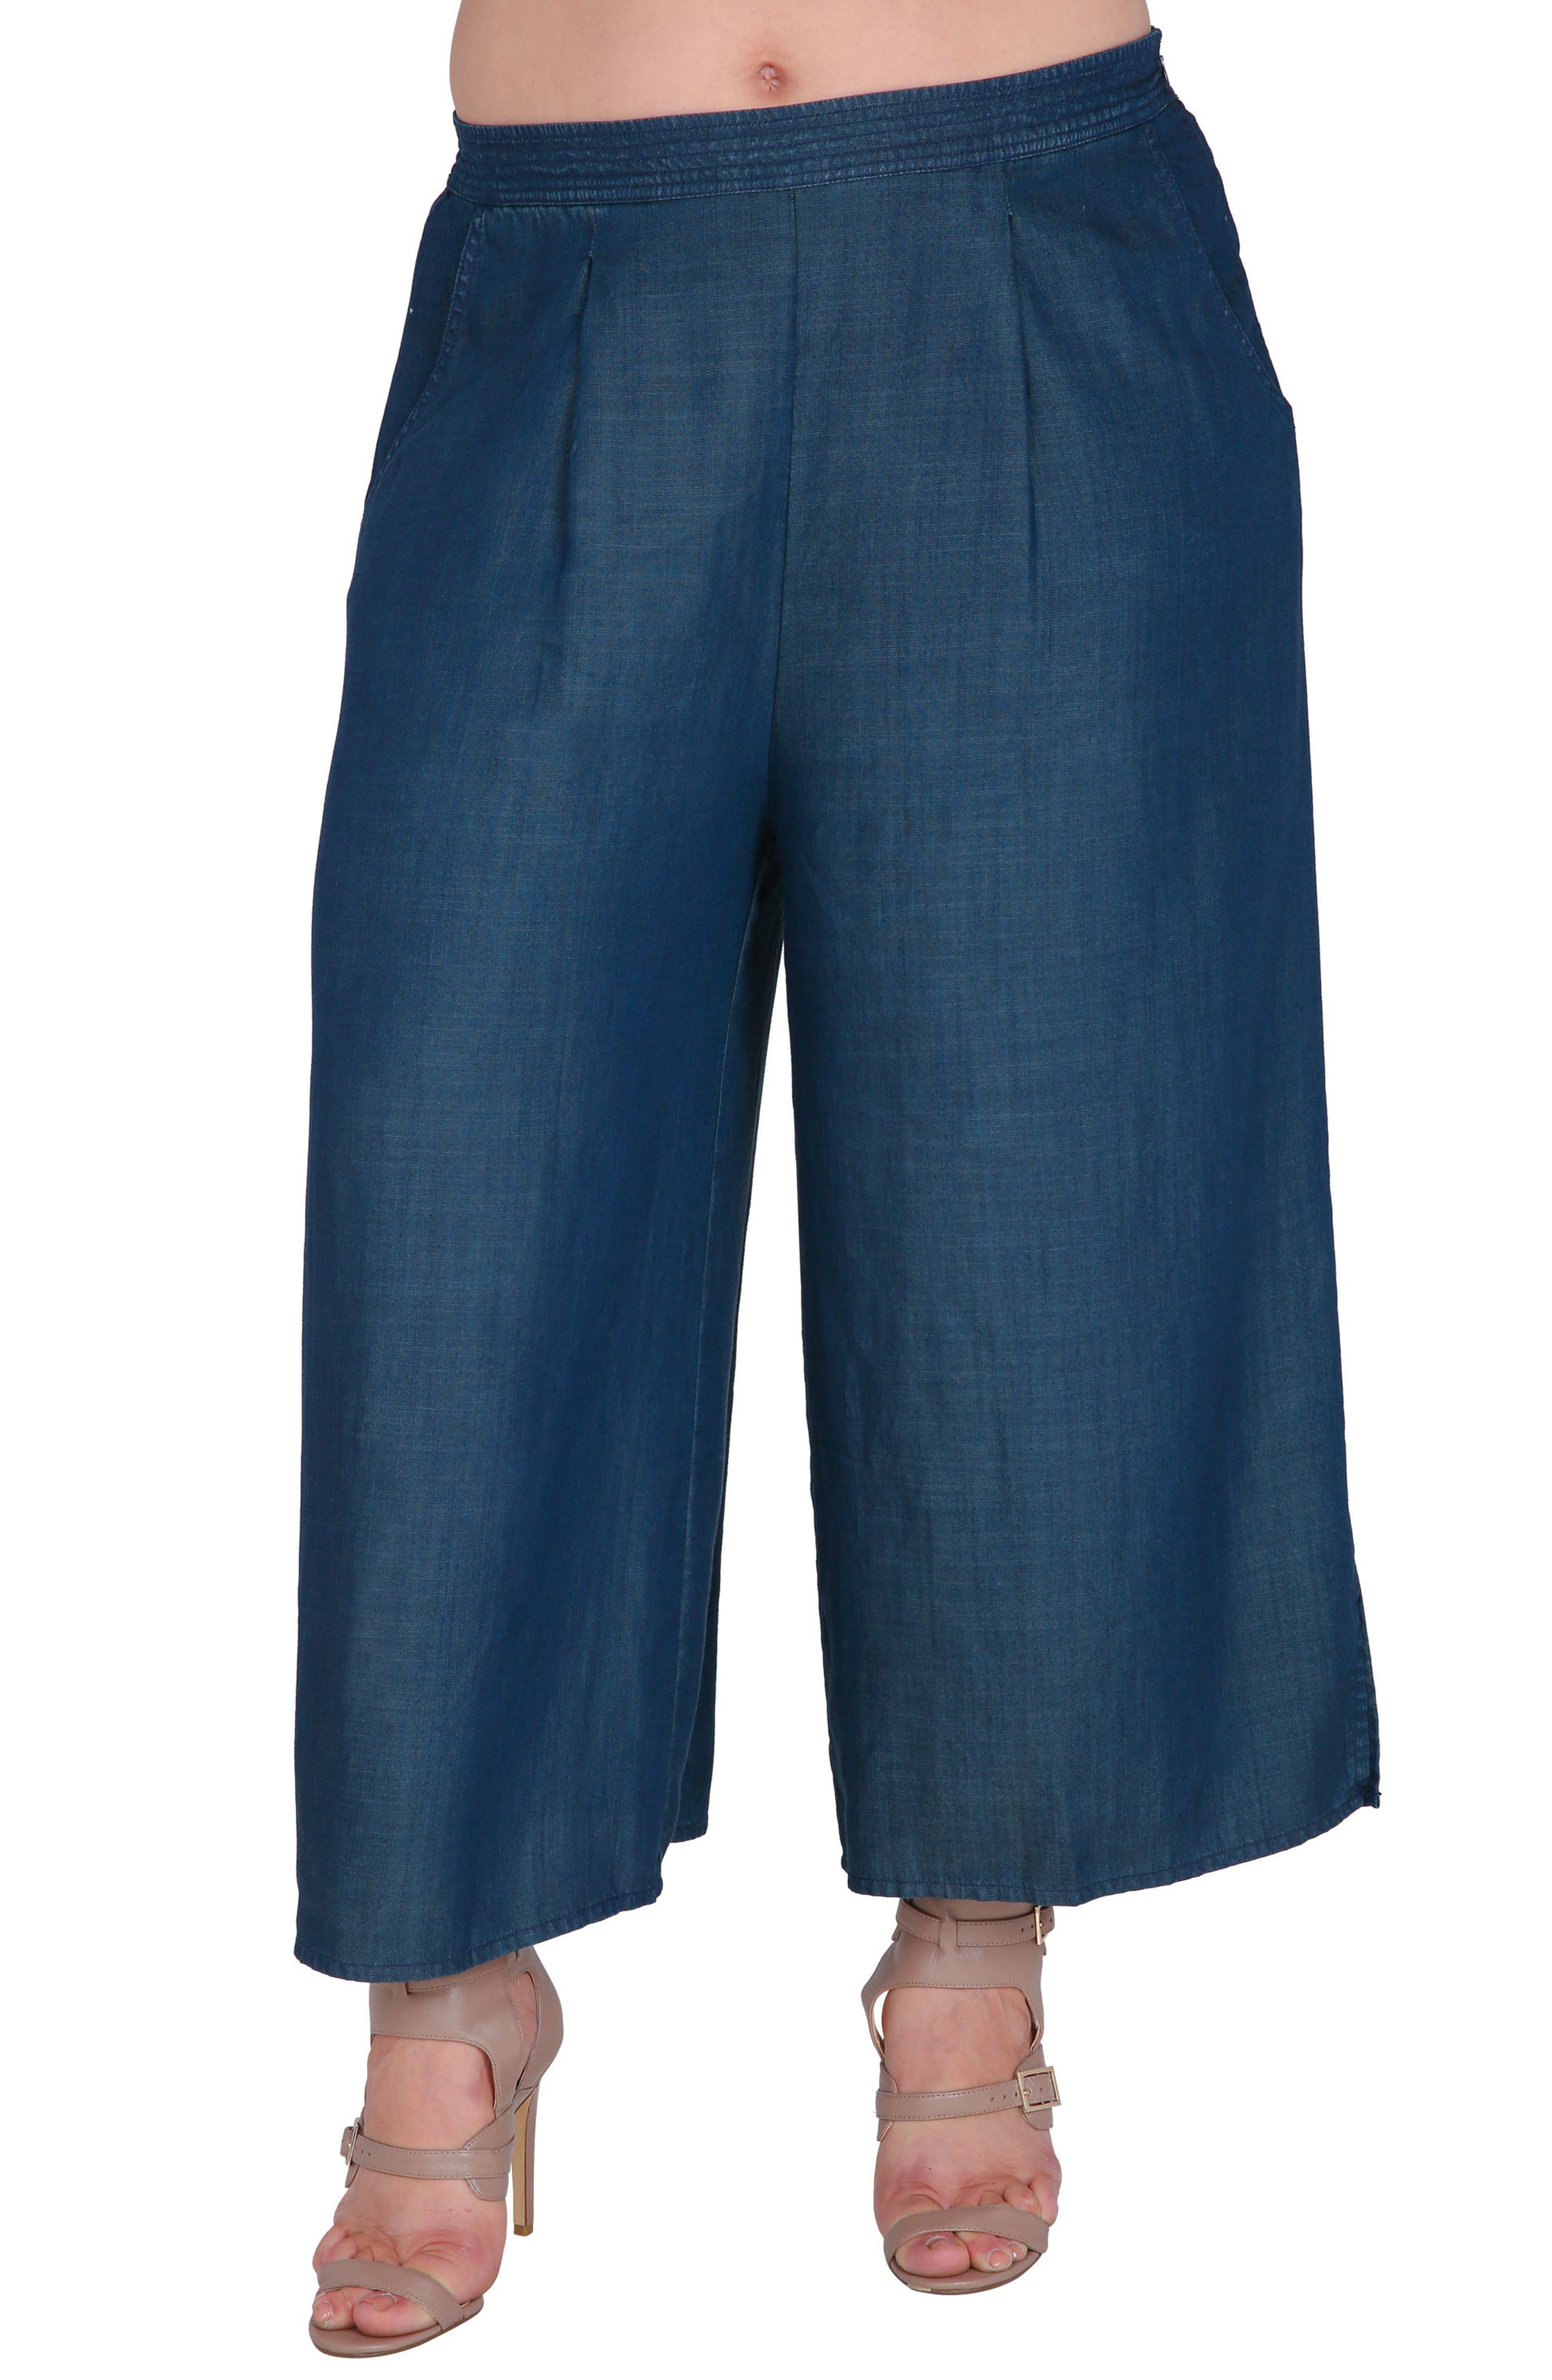 Alternate Image 1 Selected - Standards & Practices Diana Tencel® Palazzo Pants (Plus Size)